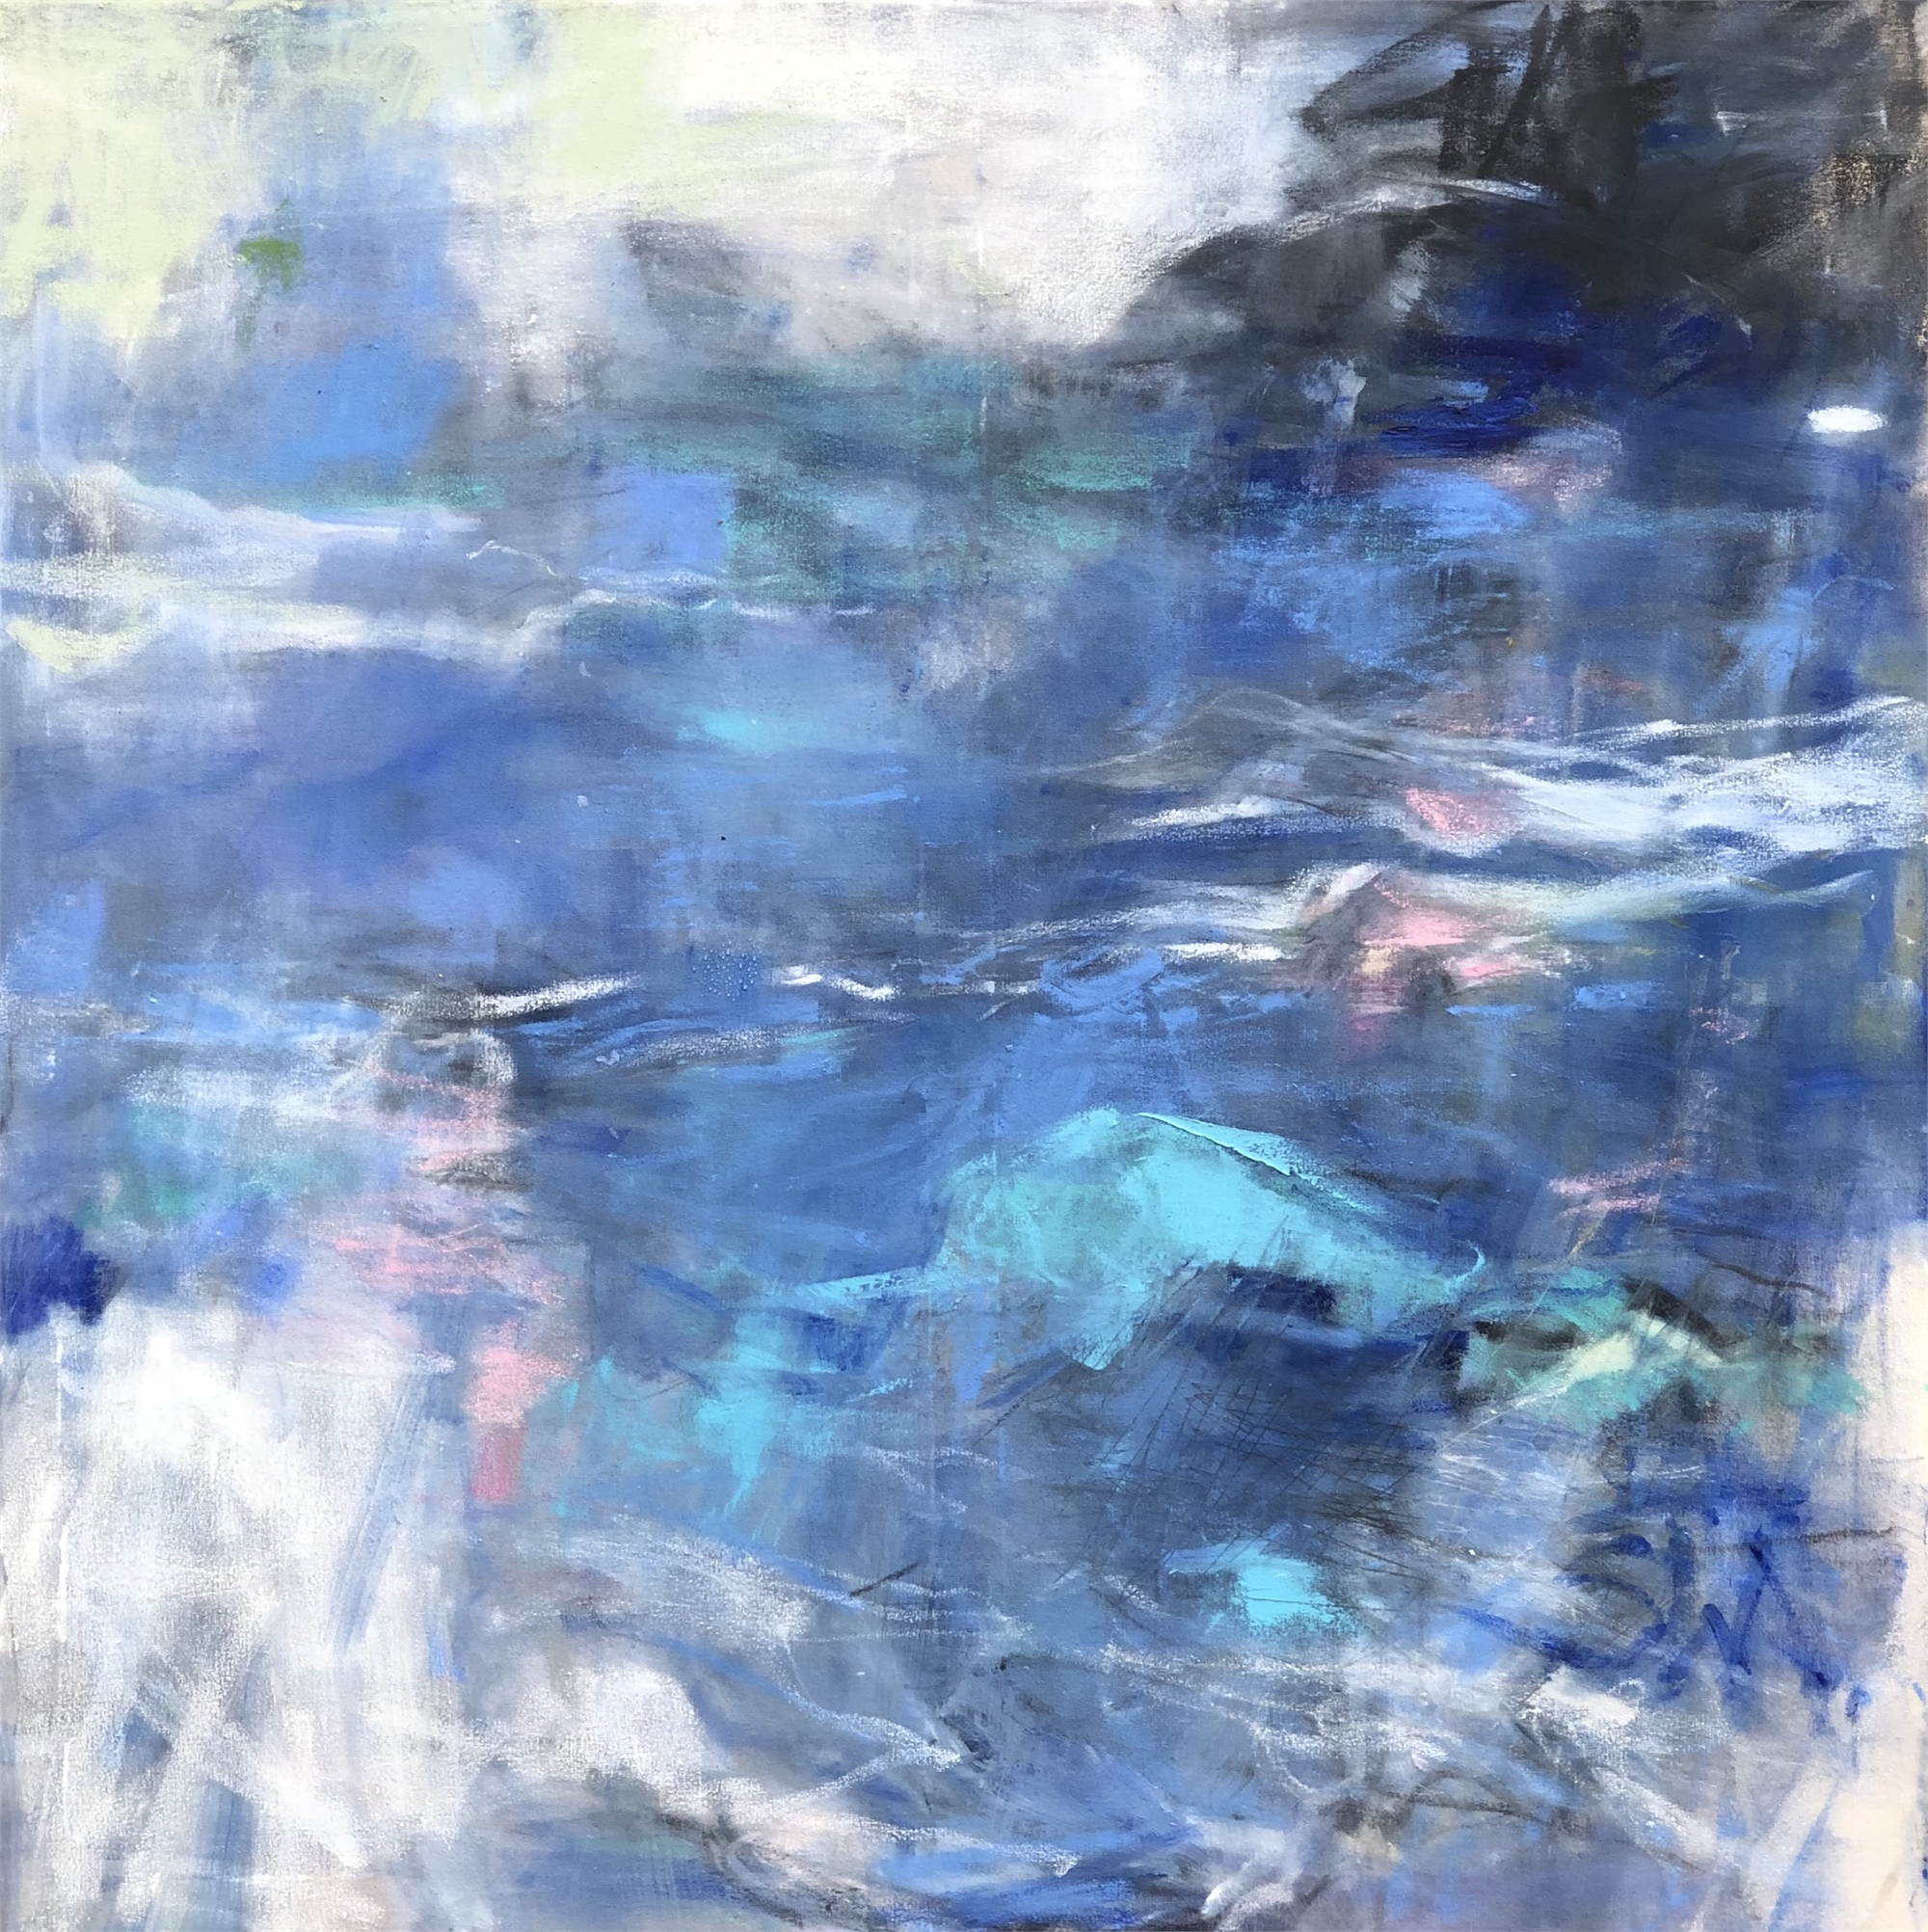 Going with the Flow by Susan Altman